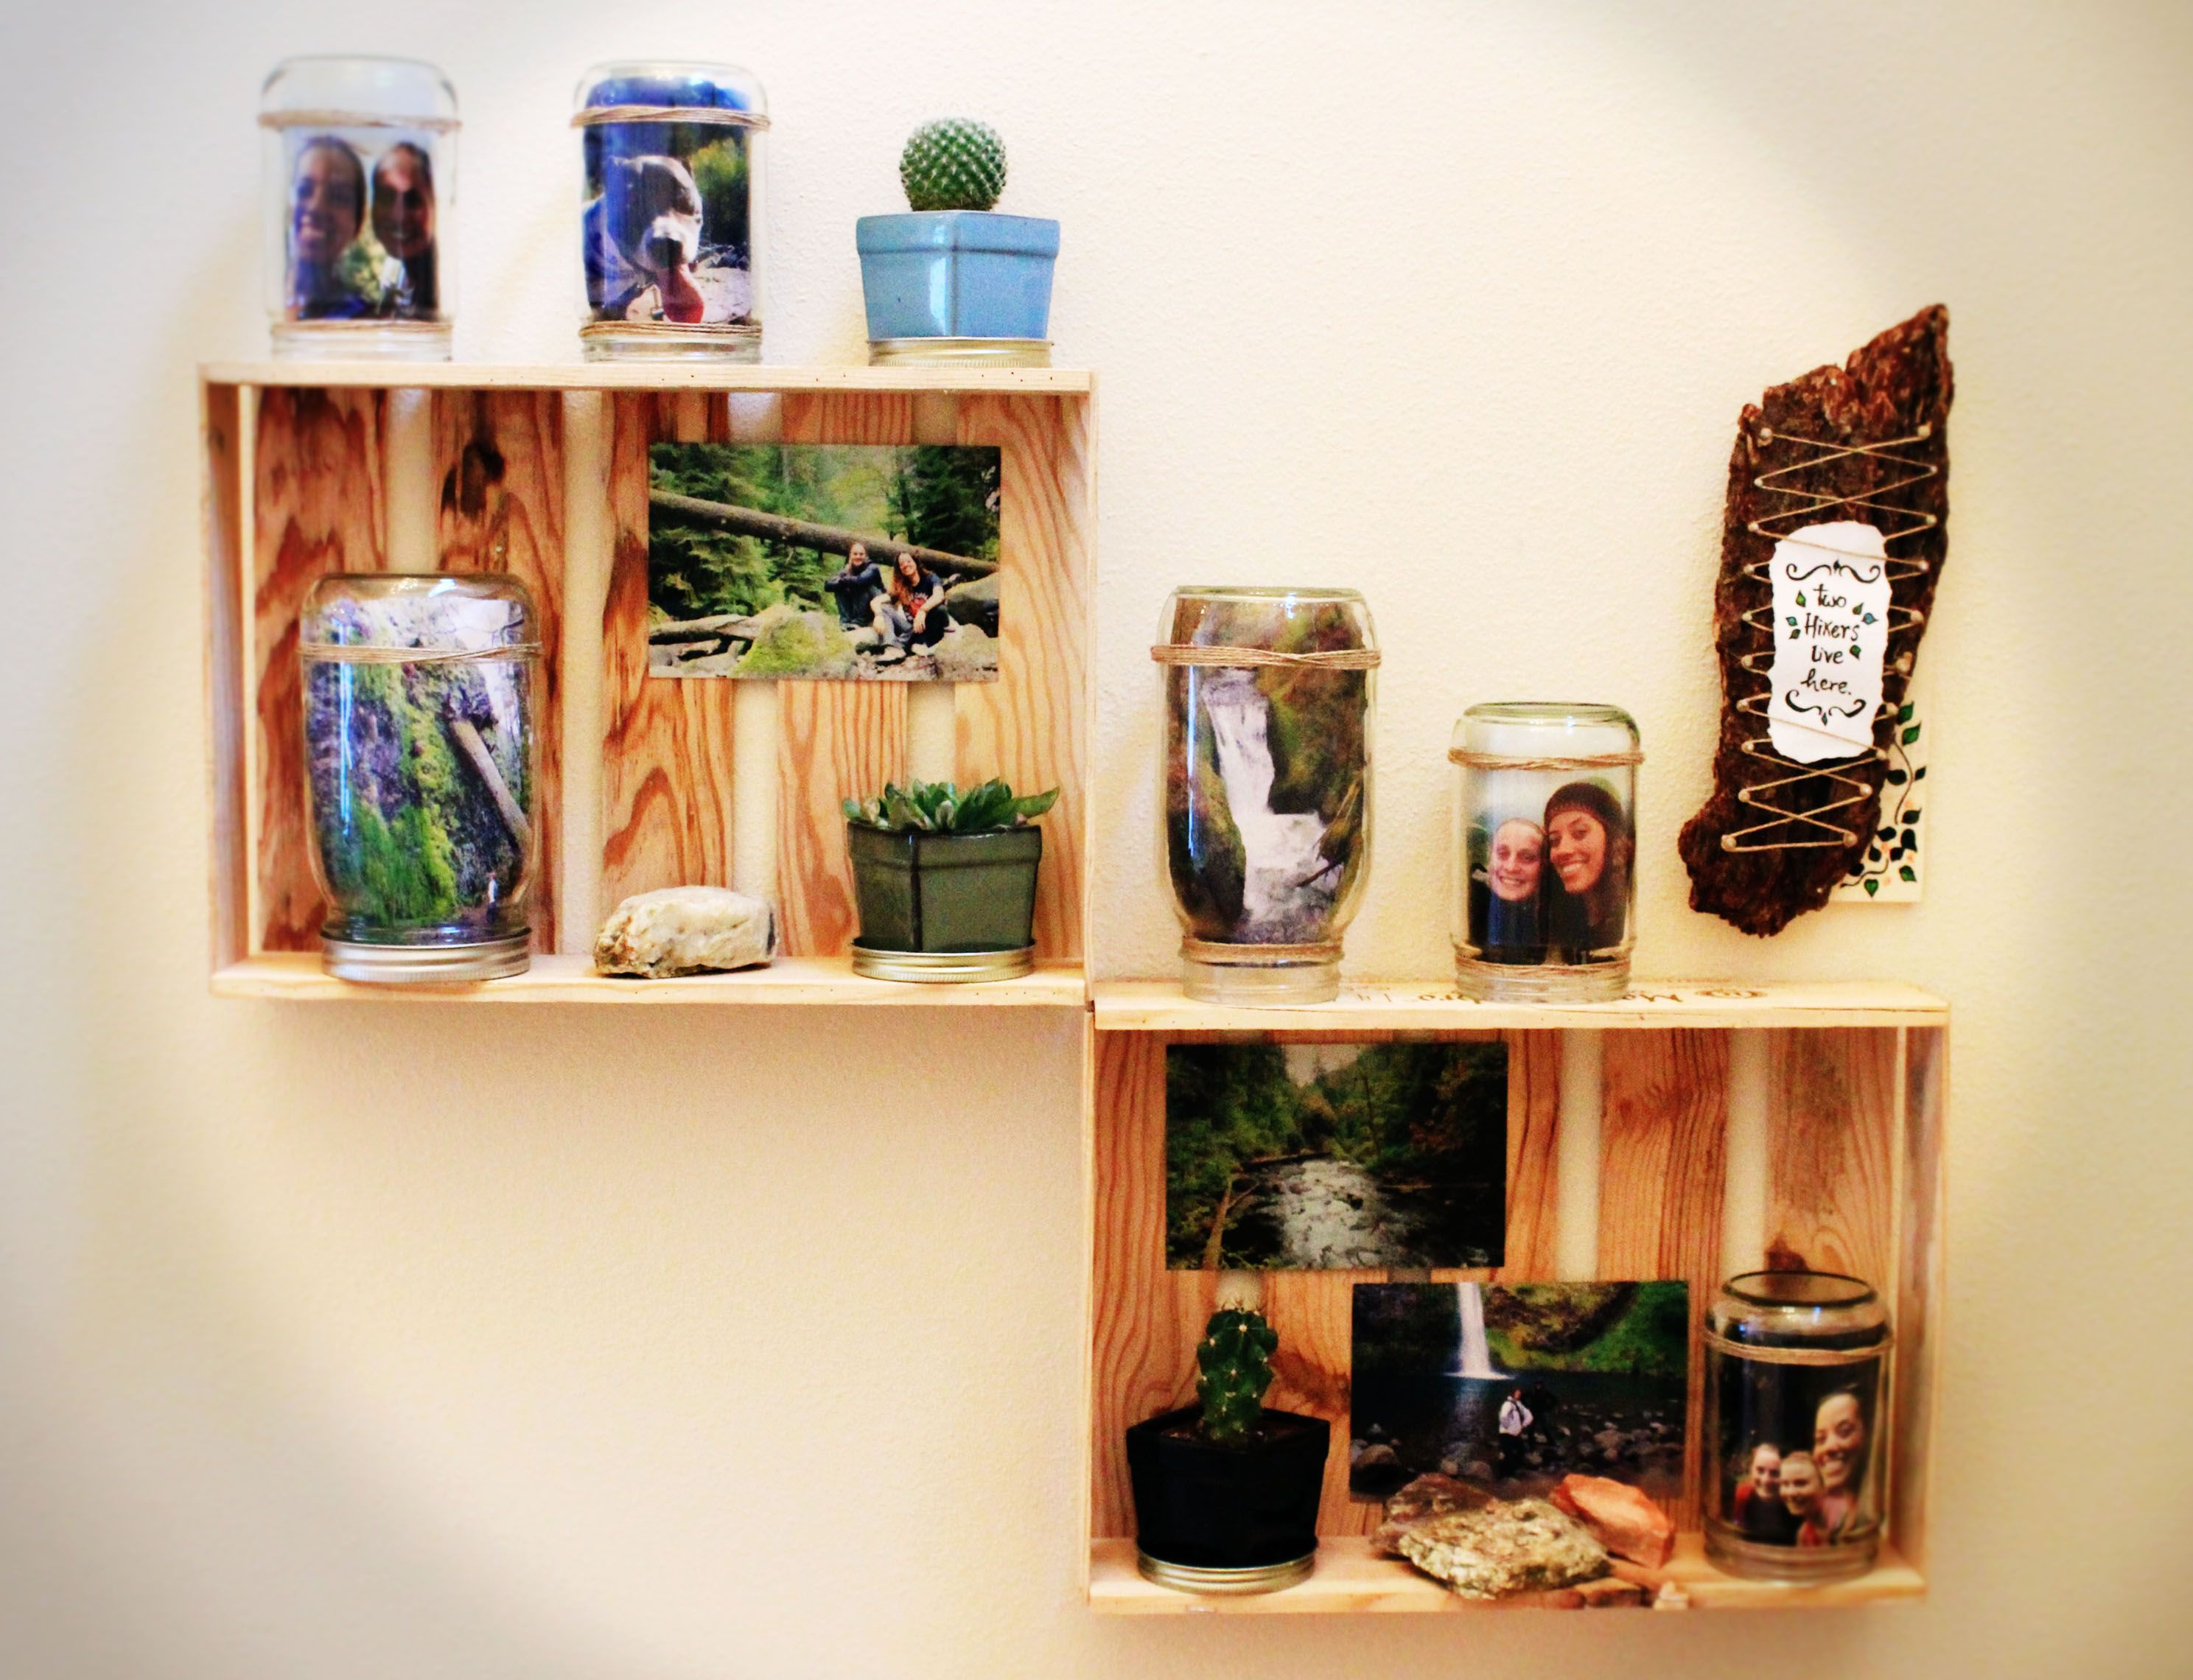 "...And there they are again: the cheese crates! This time as decorative photo shelves with old mason and almond butter jars turned into photo frames. The wooden sculpture to the right goes with the photo stand theme ""two hikers live here"" ~ my roommate and I collected that piece of wood in one of our hikes! :)"